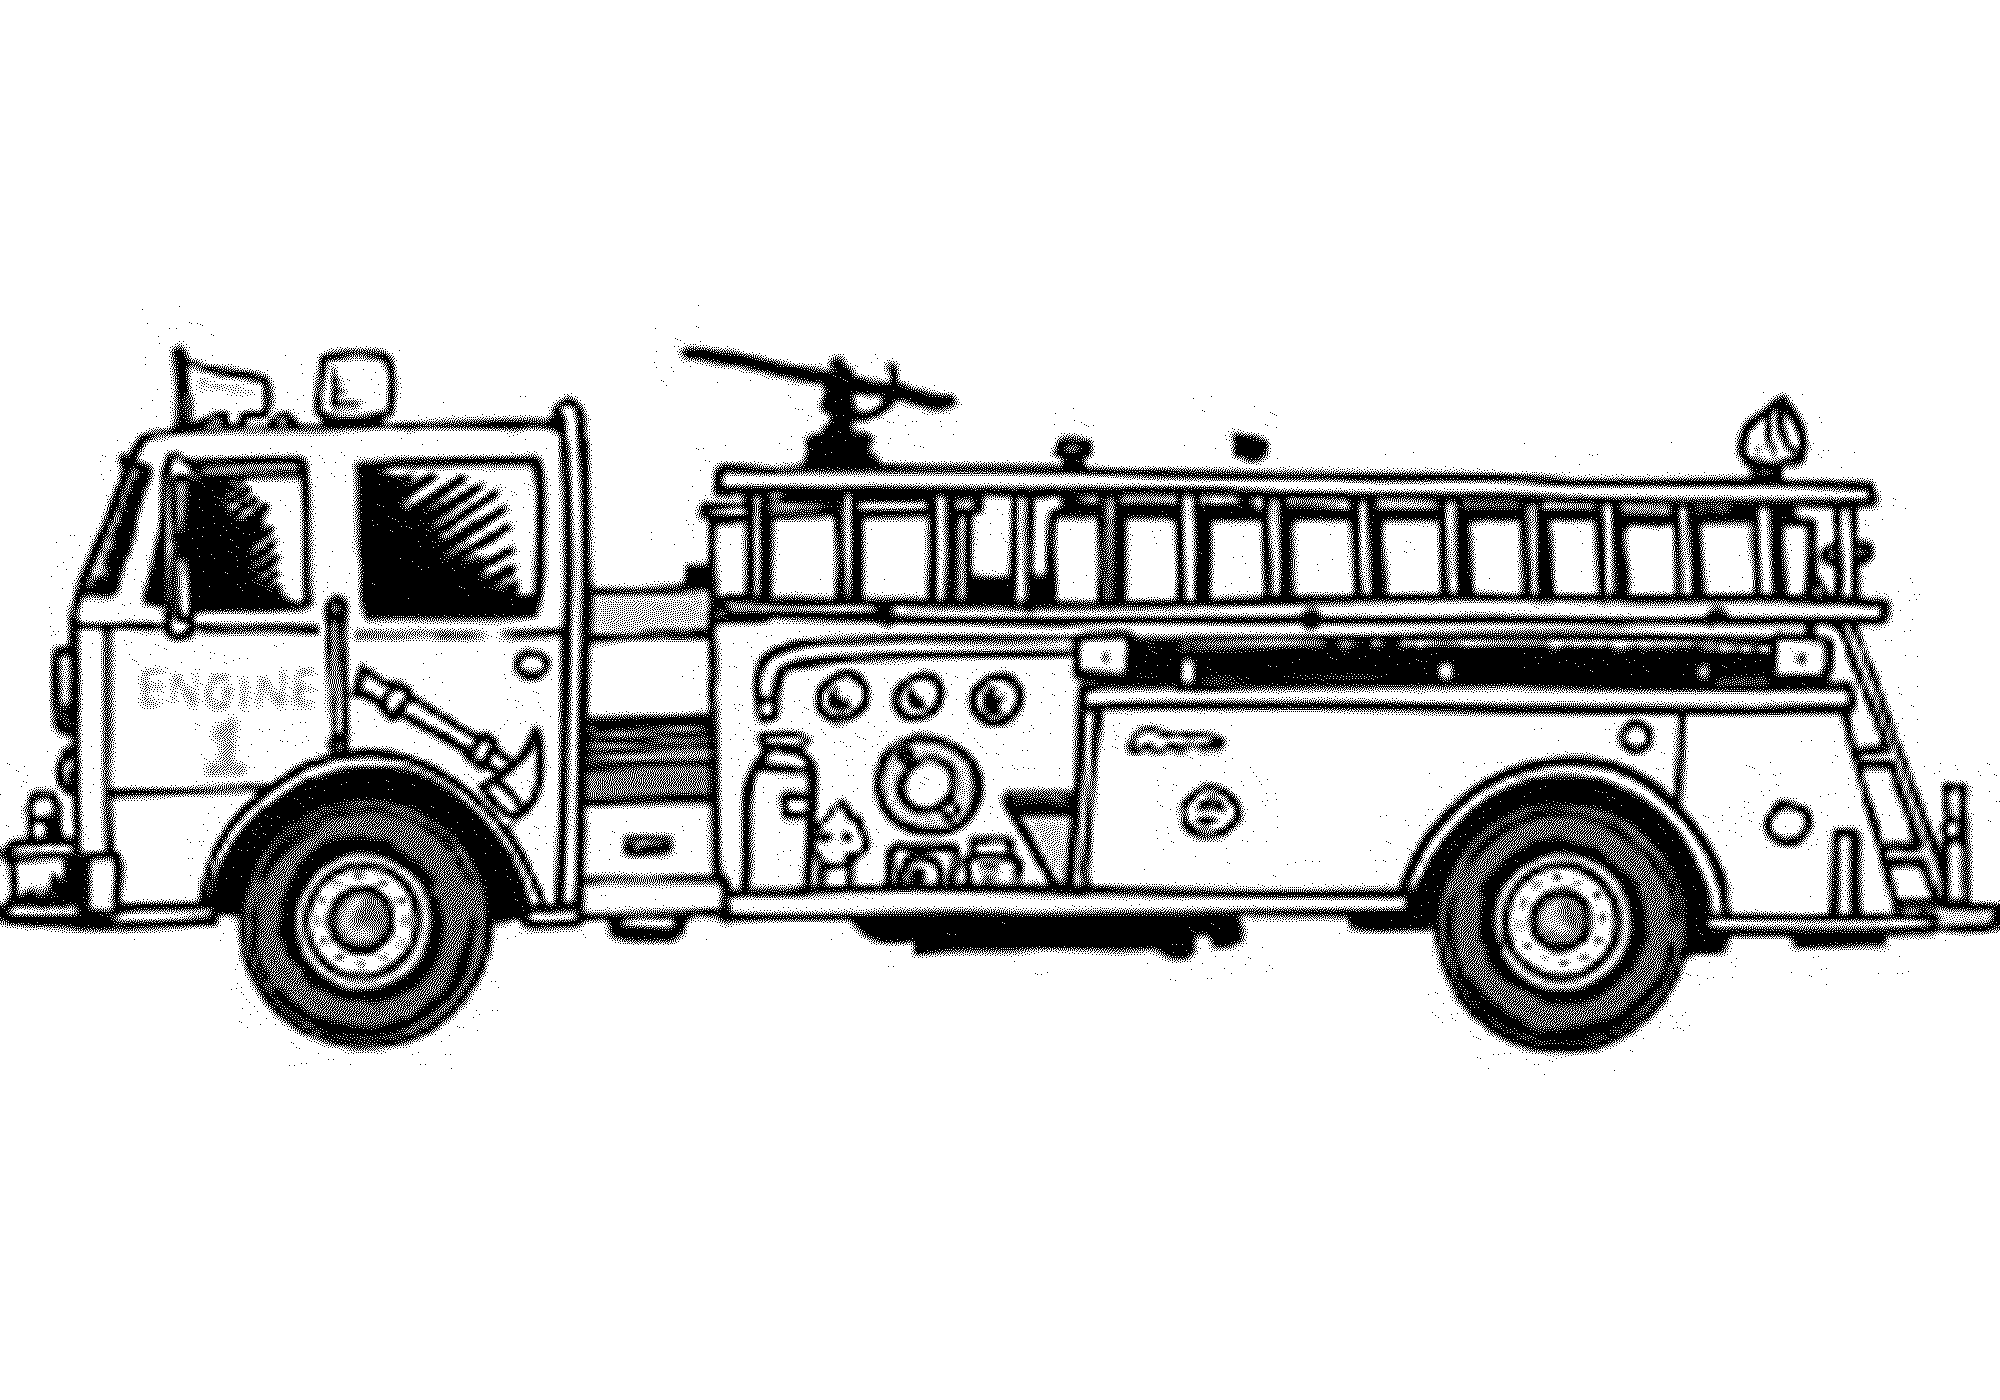 Fire Engine Diagram In Color Wiring Third Level Library Sketch Big Truck Coloring Page